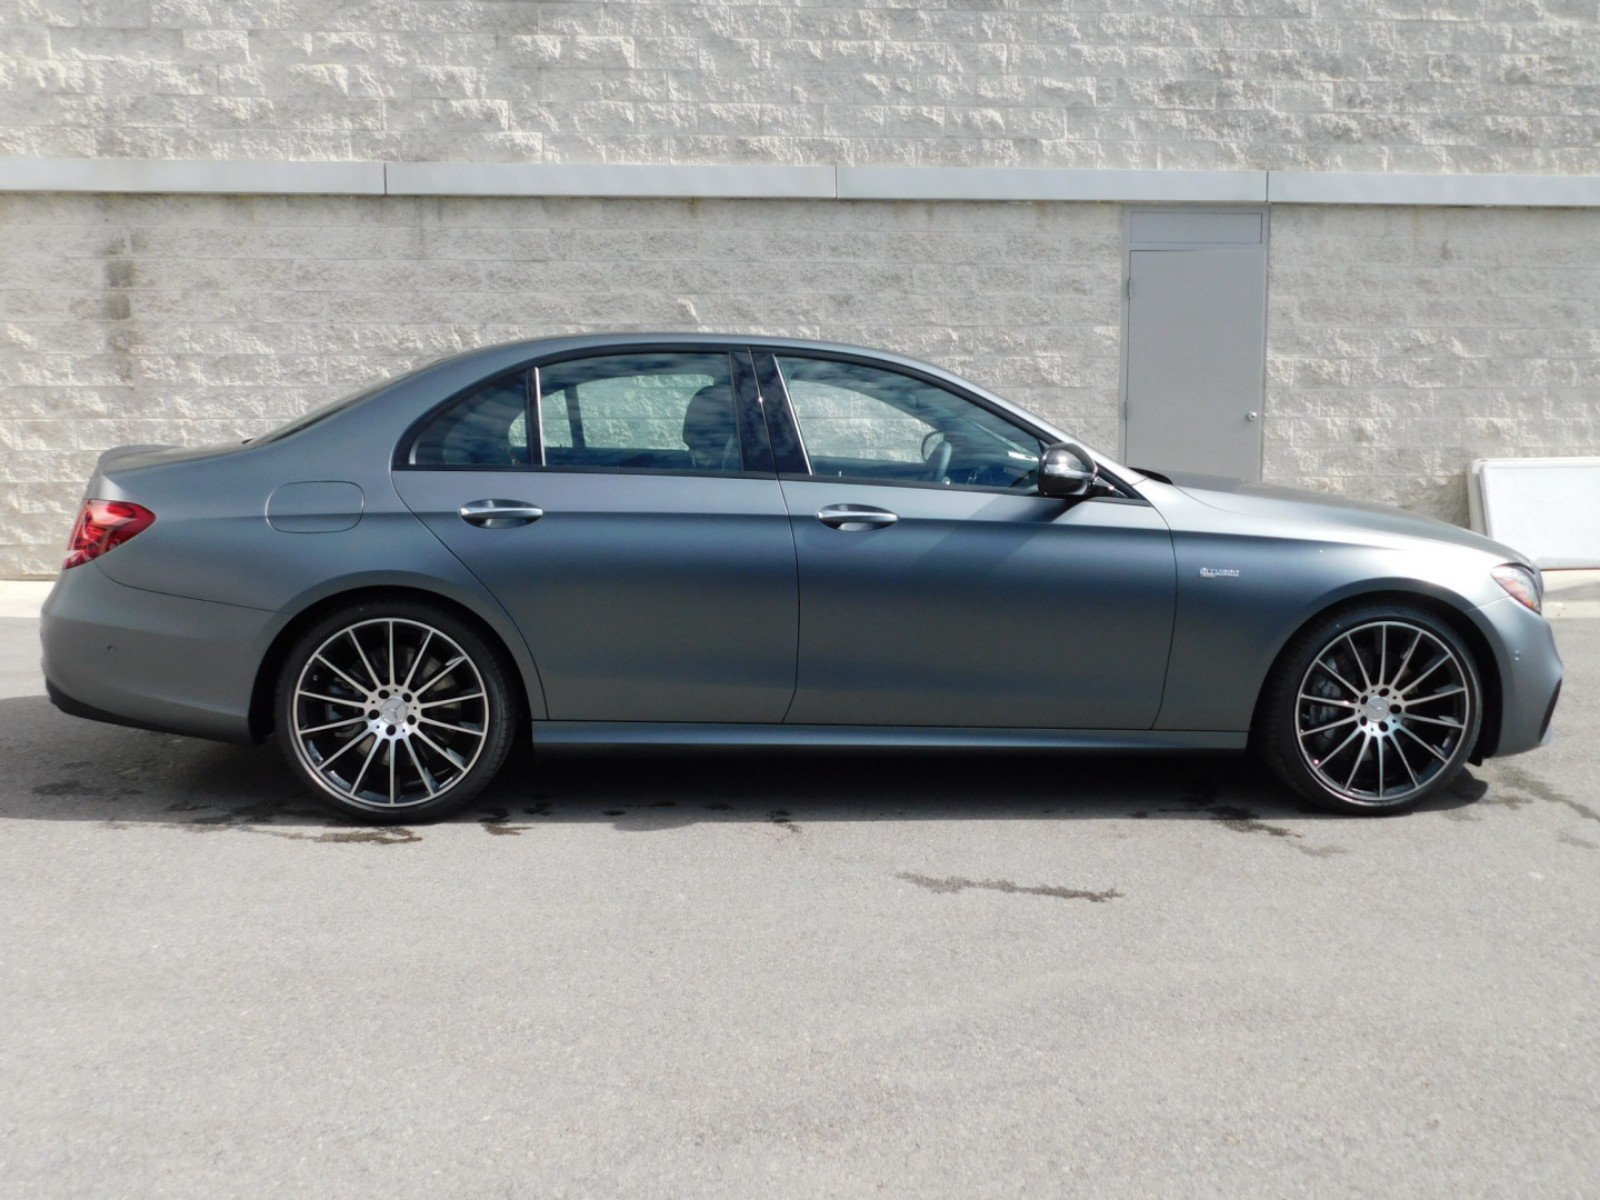 New 2018 Mercedes Benz E Class AMG E 43 4dr Car 1M8564